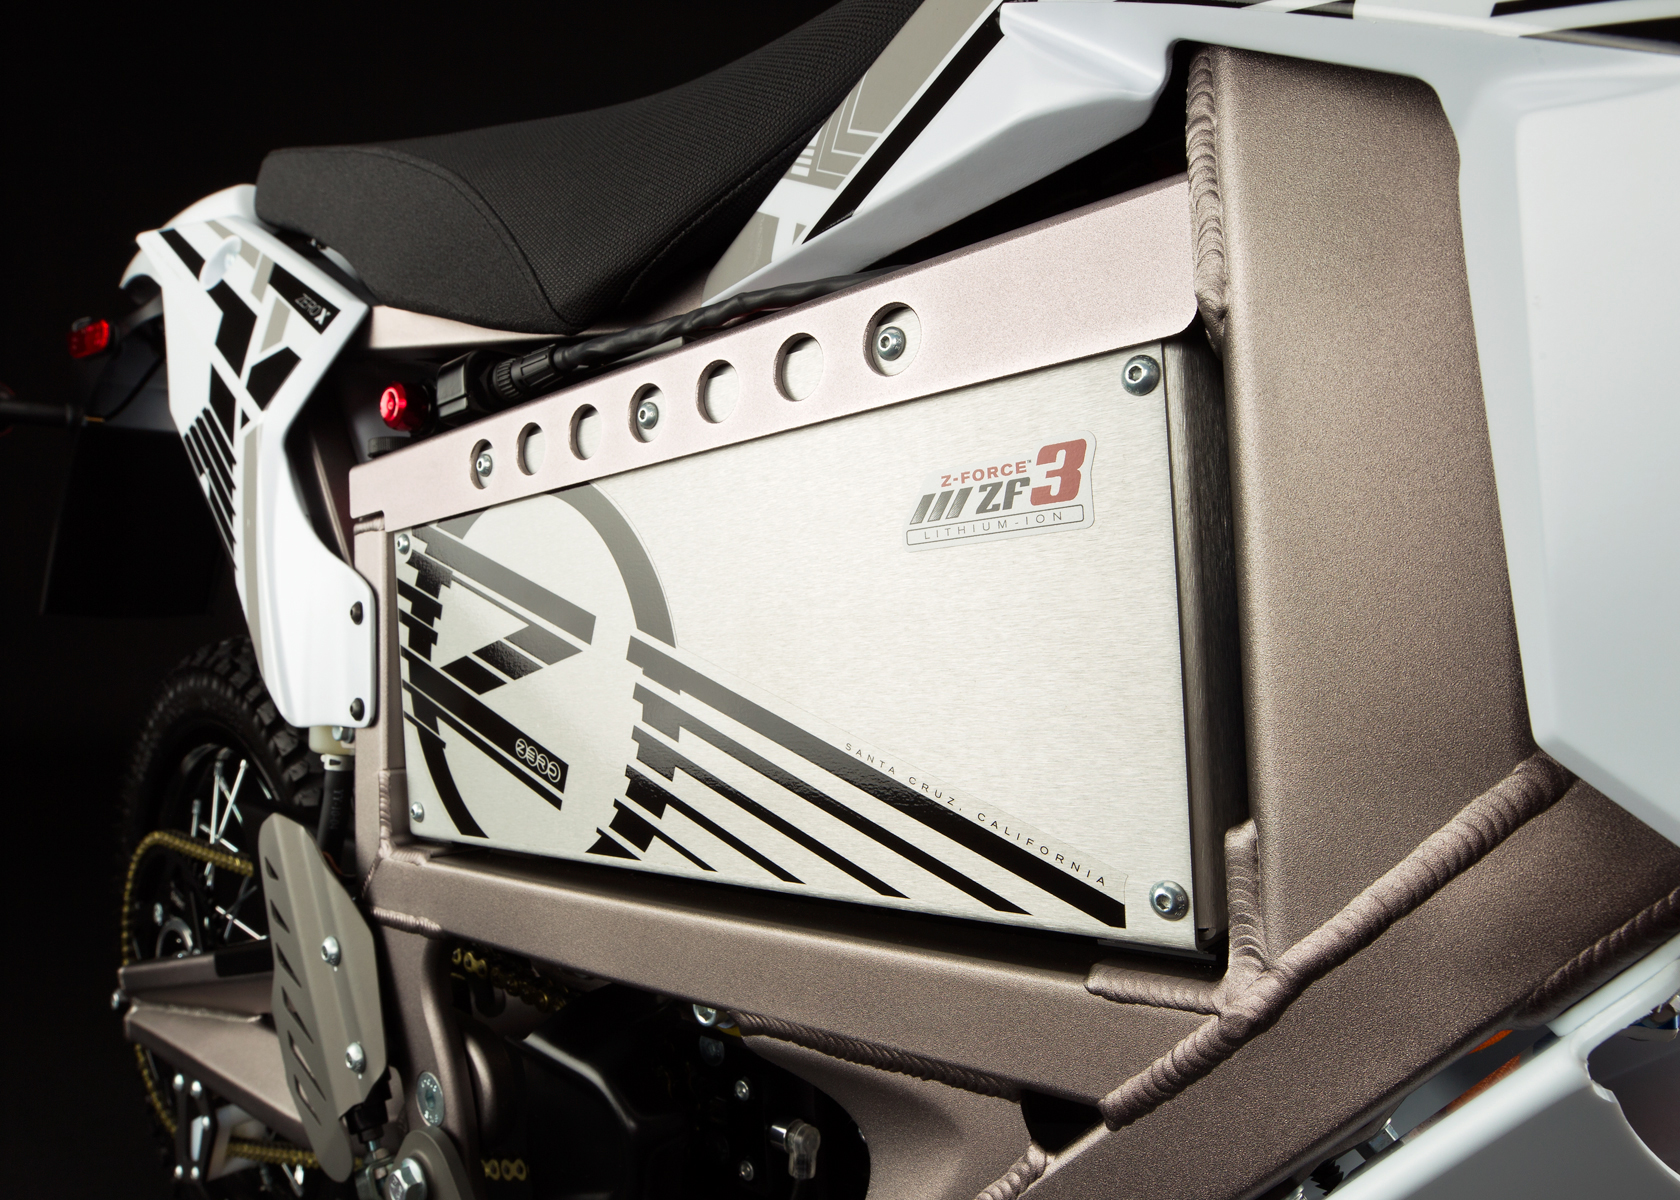 2012 Zero X Electric Motorcycle: Battery